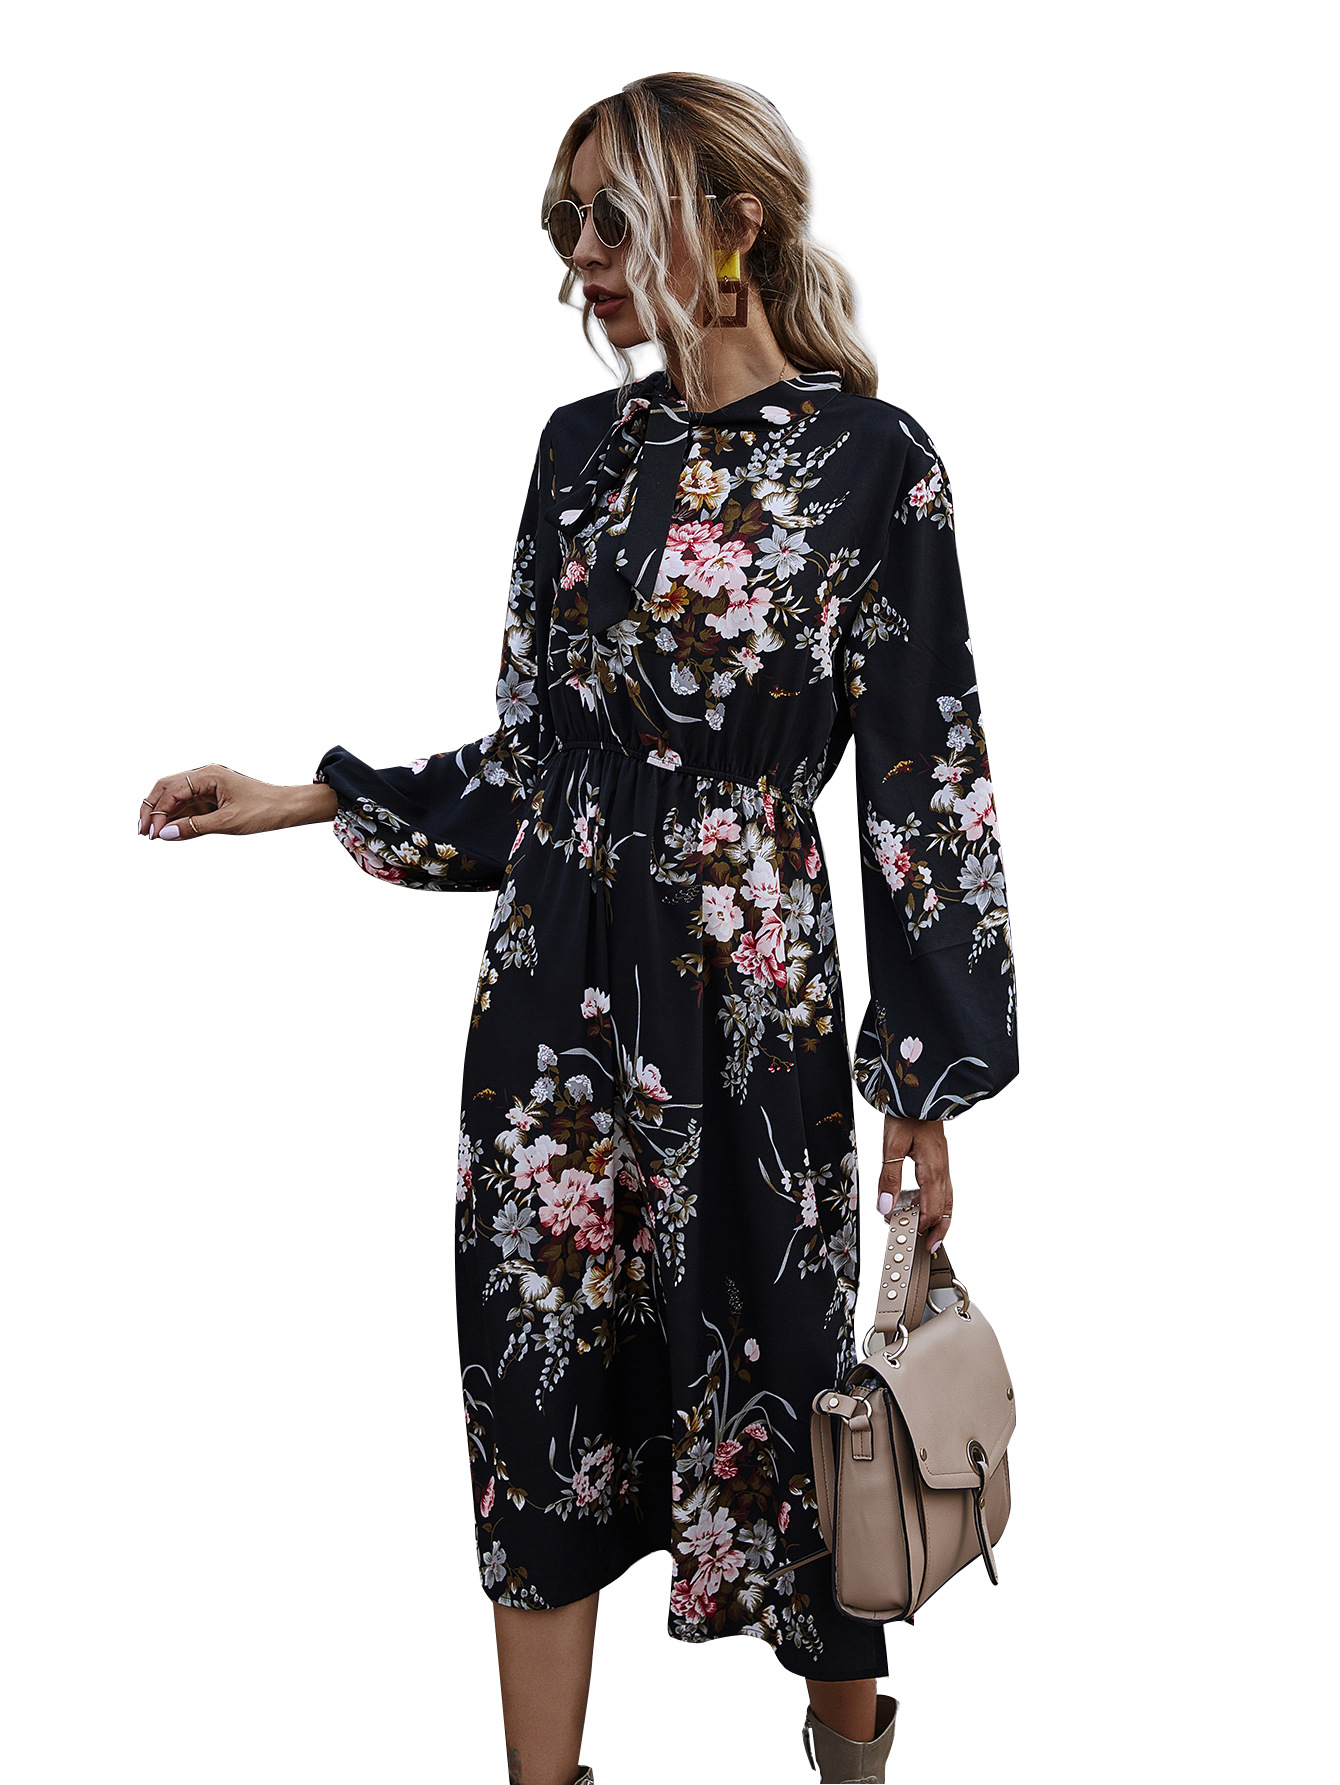 hot black bottom printed puff sleeve stand collar tie bow waist dress wholesale NHDF15